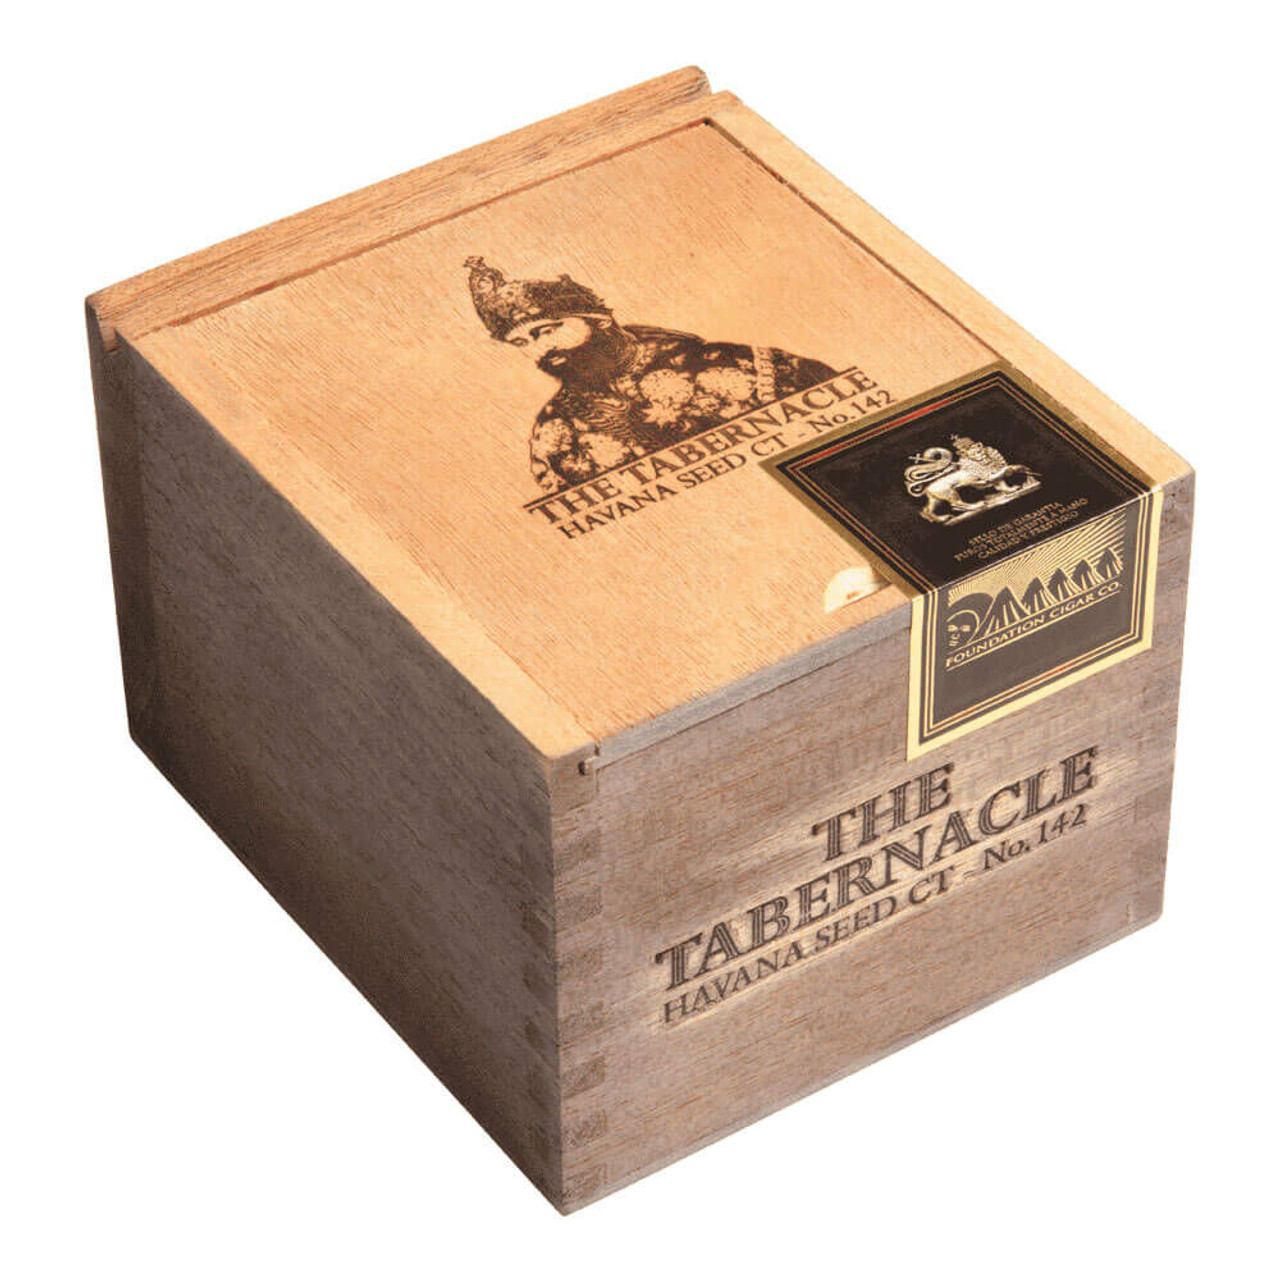 Foundation The Tabernacle No. 142 Havana Seed CT Robusto Cigars - 5.0 x 50 (Box of 24)